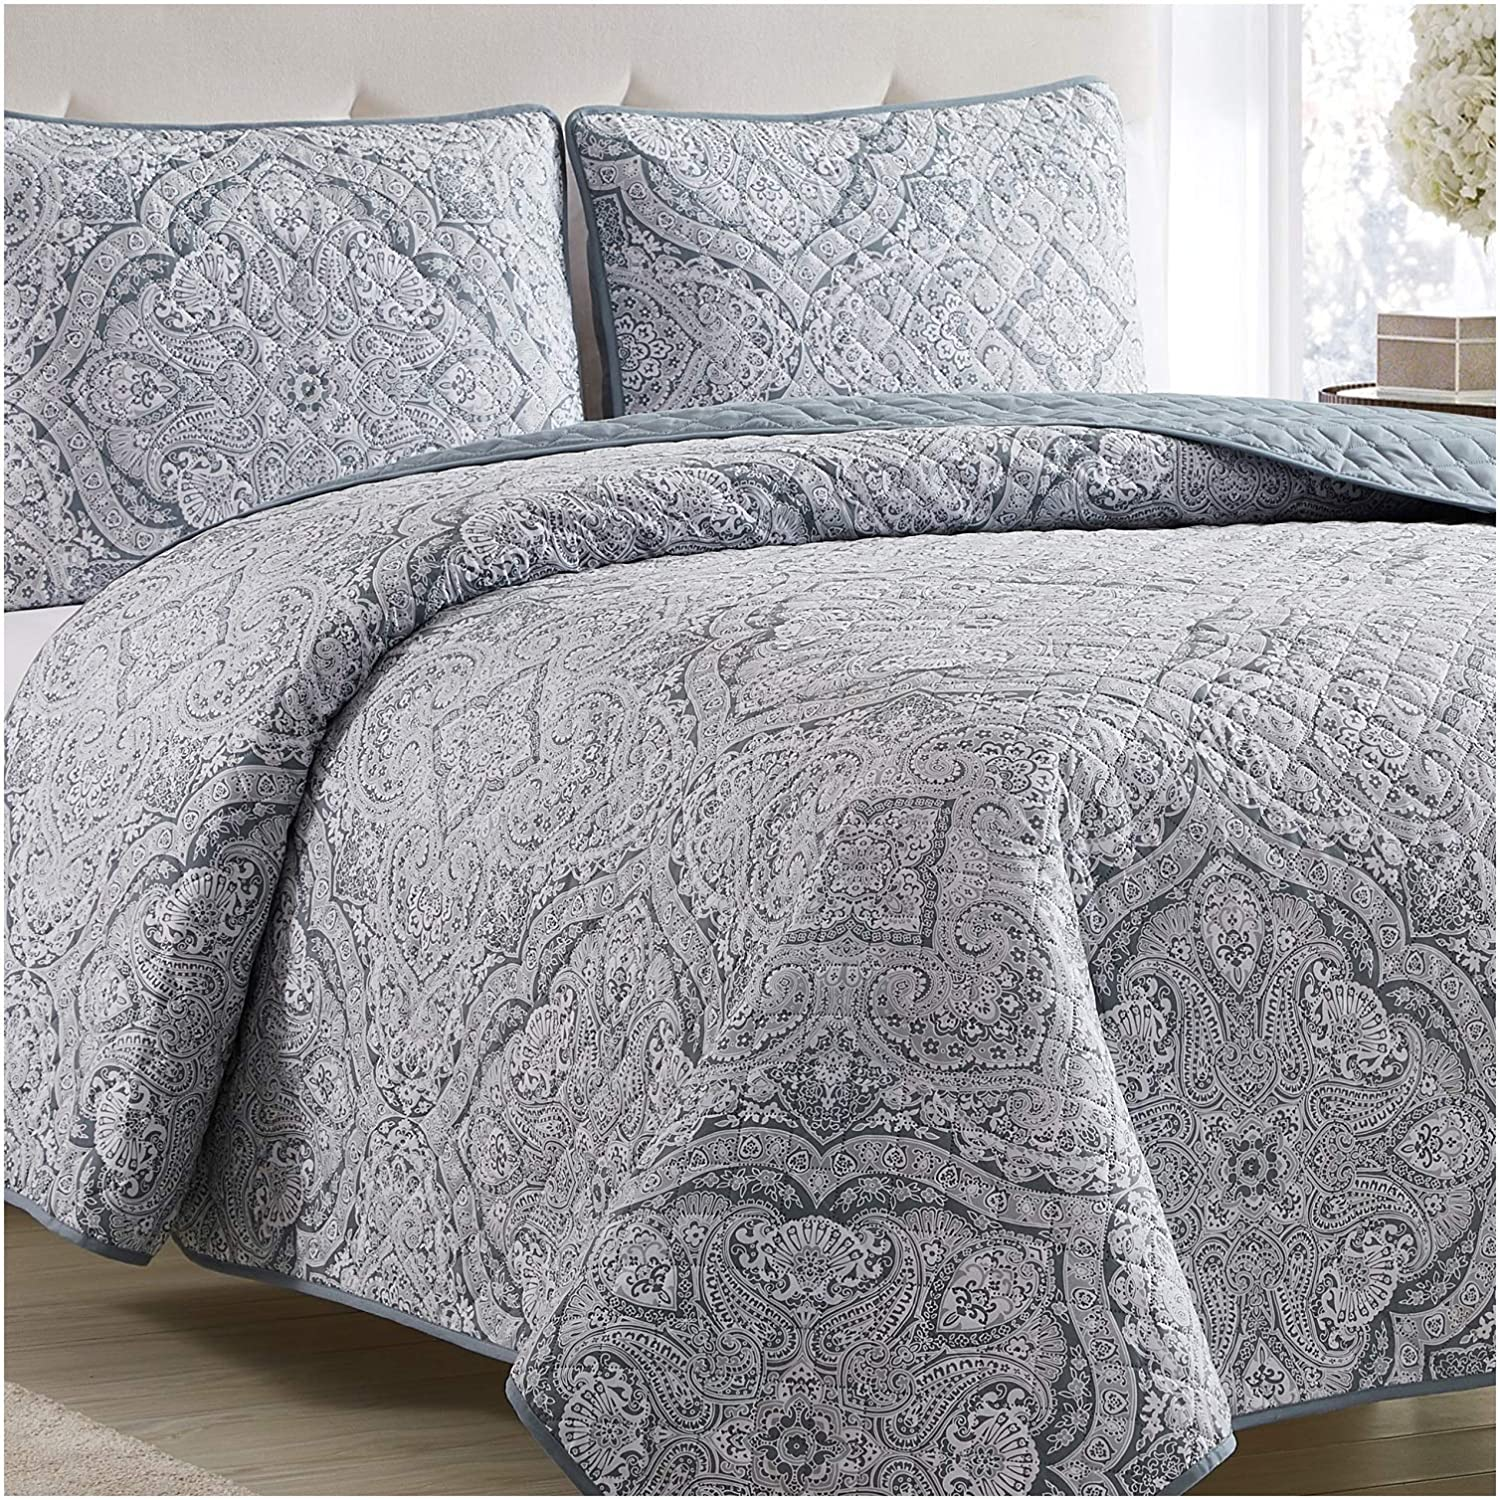 Mellanni Bedspread Coverlet Set Medallion-Zen - Comforter Bedding Cover - Oversized 3-Piece Quilt Set (King/Cal King, Medallion Zen)